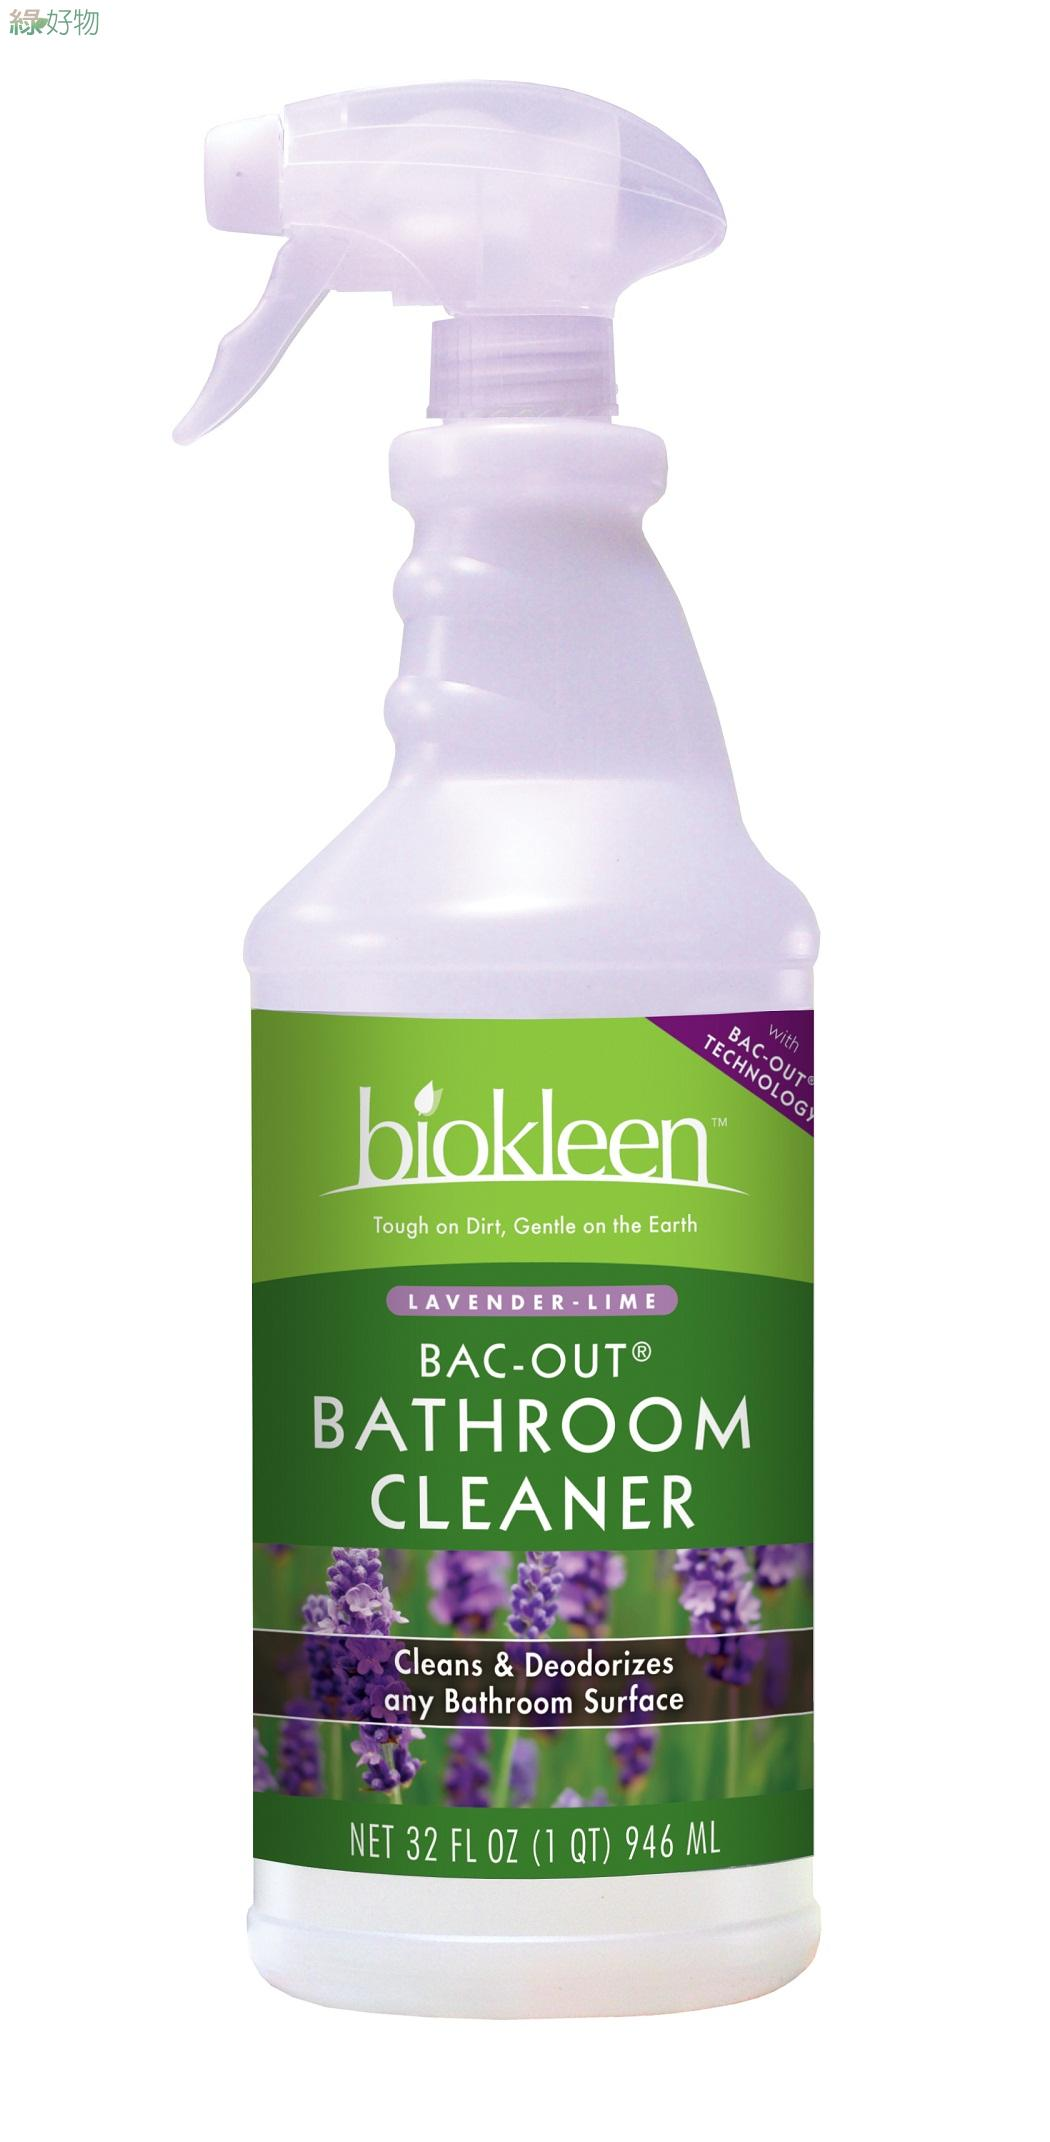 Bio kleen products